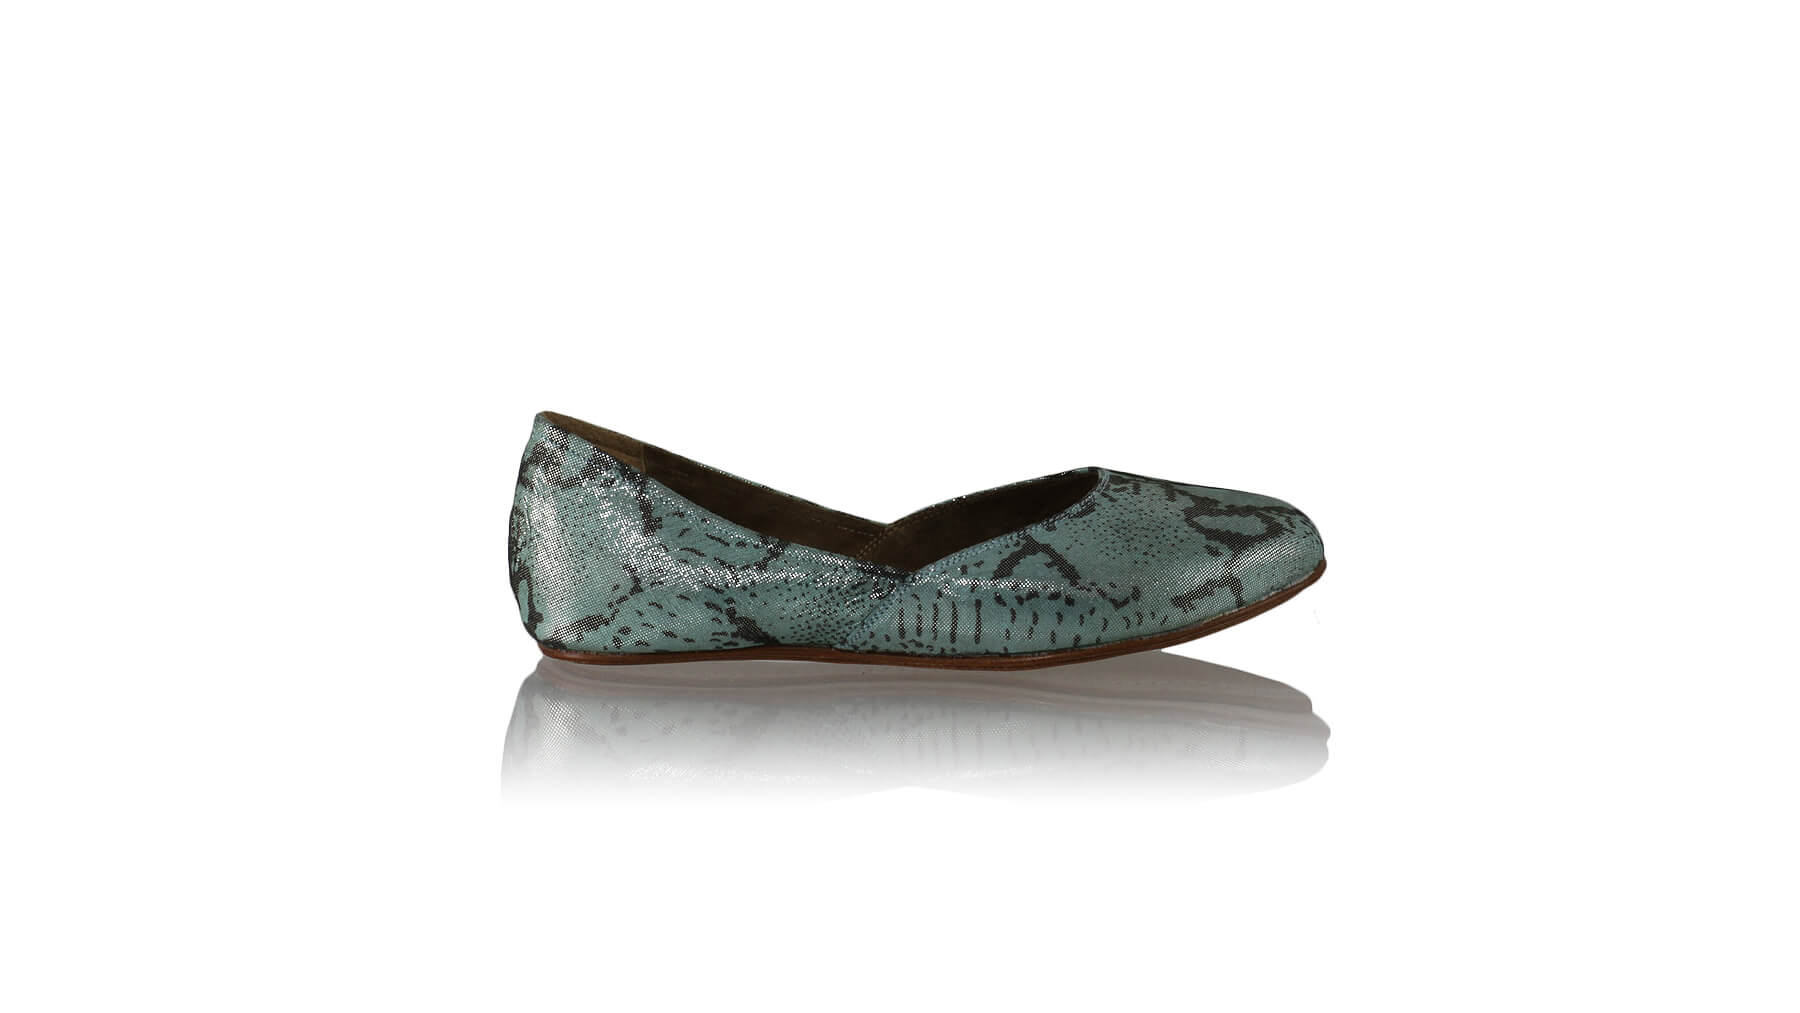 Leather-shoes-Punjab 5mm Ballet - Blue Cobra Print-flats ballet-NILUH DJELANTIK-NILUH DJELANTIK